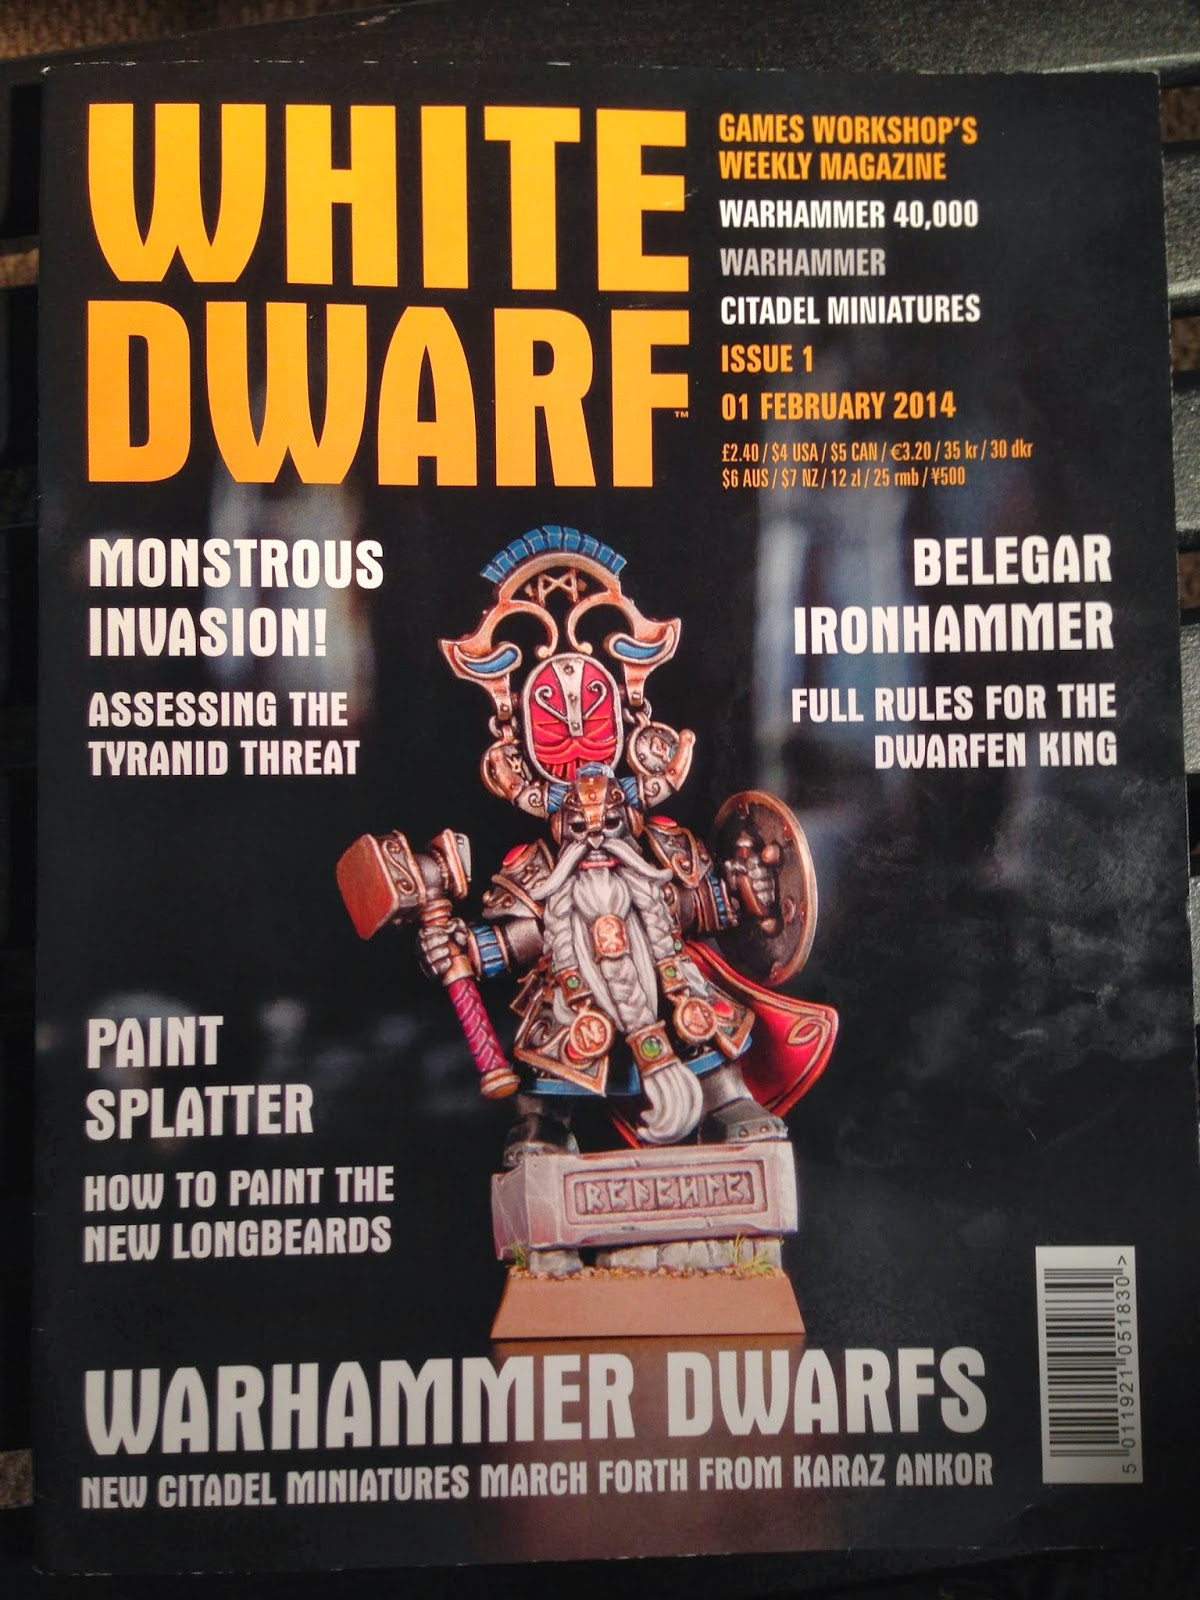 White Dwarf Weekly Issue 1 Review. | Wargaming Hub